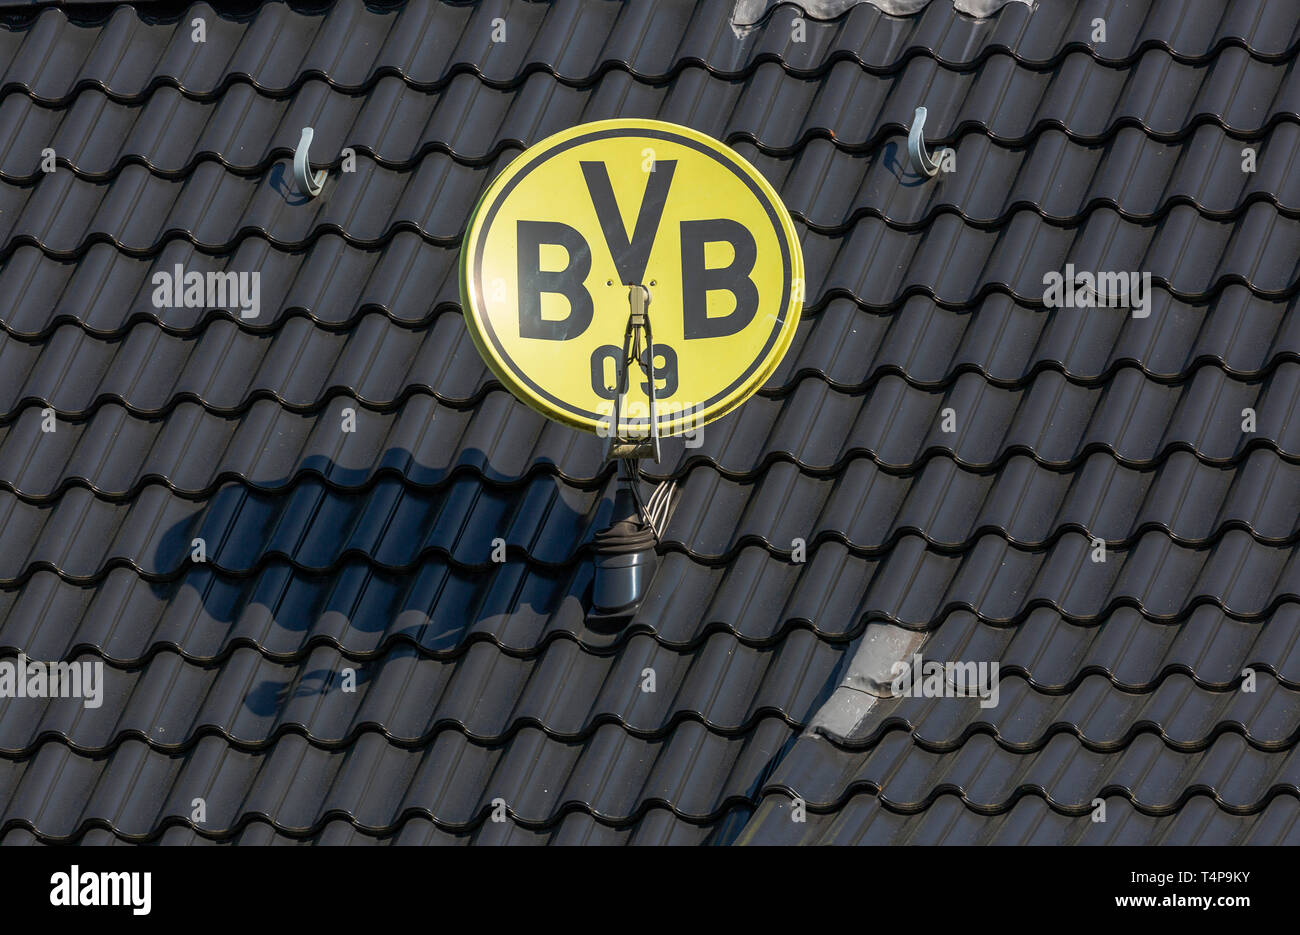 symbolic image, parabolic antenna in club colours and with club emblem of the German football club BVB 09 Borussia Dortmund on a house roof, television aerial, satellite TV, sports, football, Bundesliga, football mania, club loyalty, roofing tiles Stock Photo